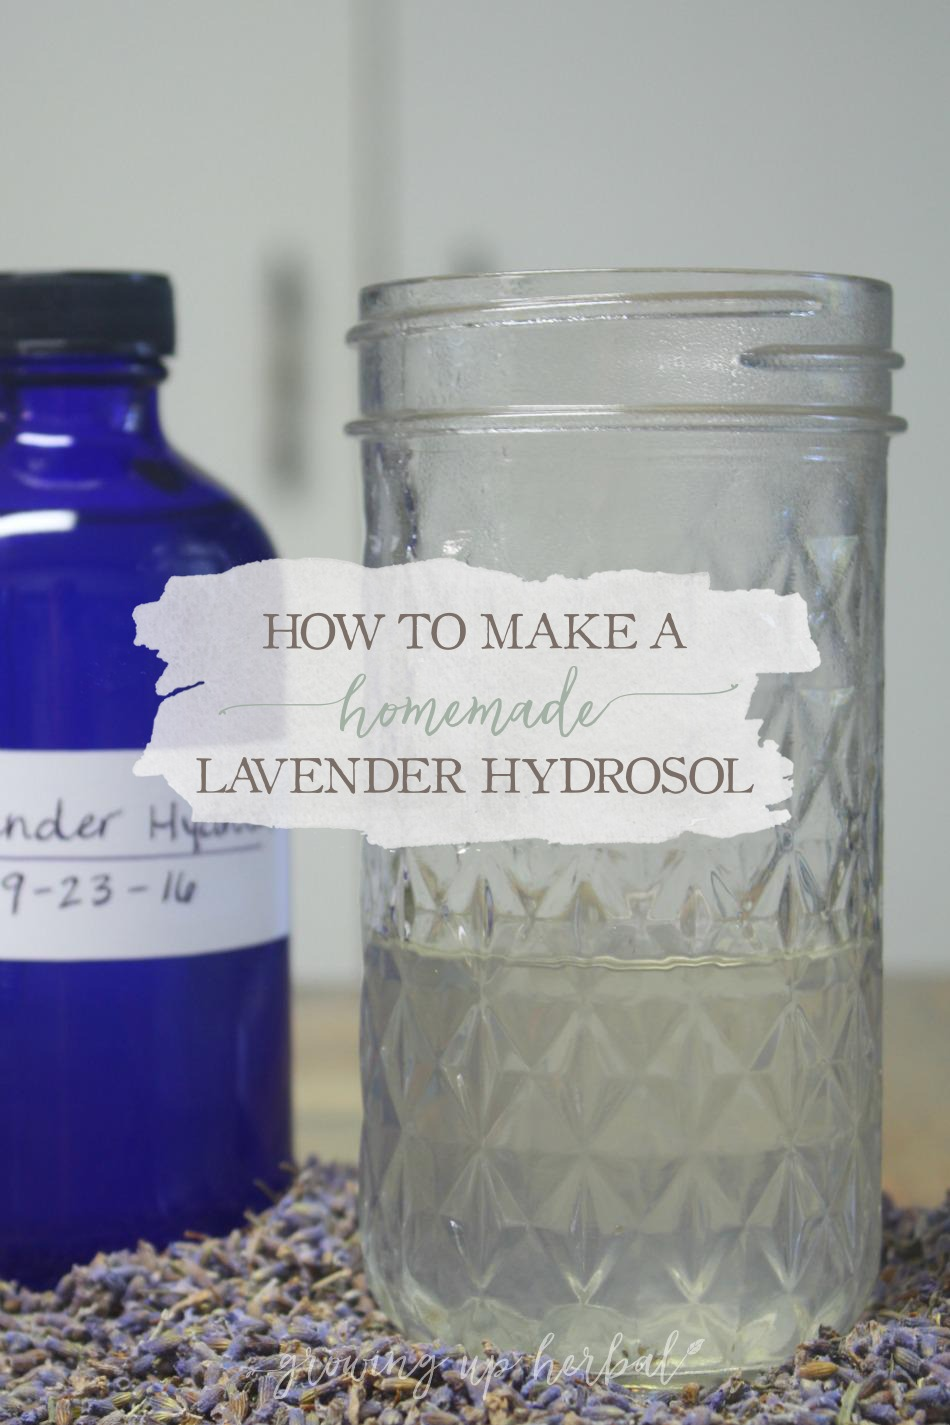 Homemade Lavender Hydrosol Tutorial | Growing Up Herbal | Learn how to make and use a homemade lavender hydrosol for better health!